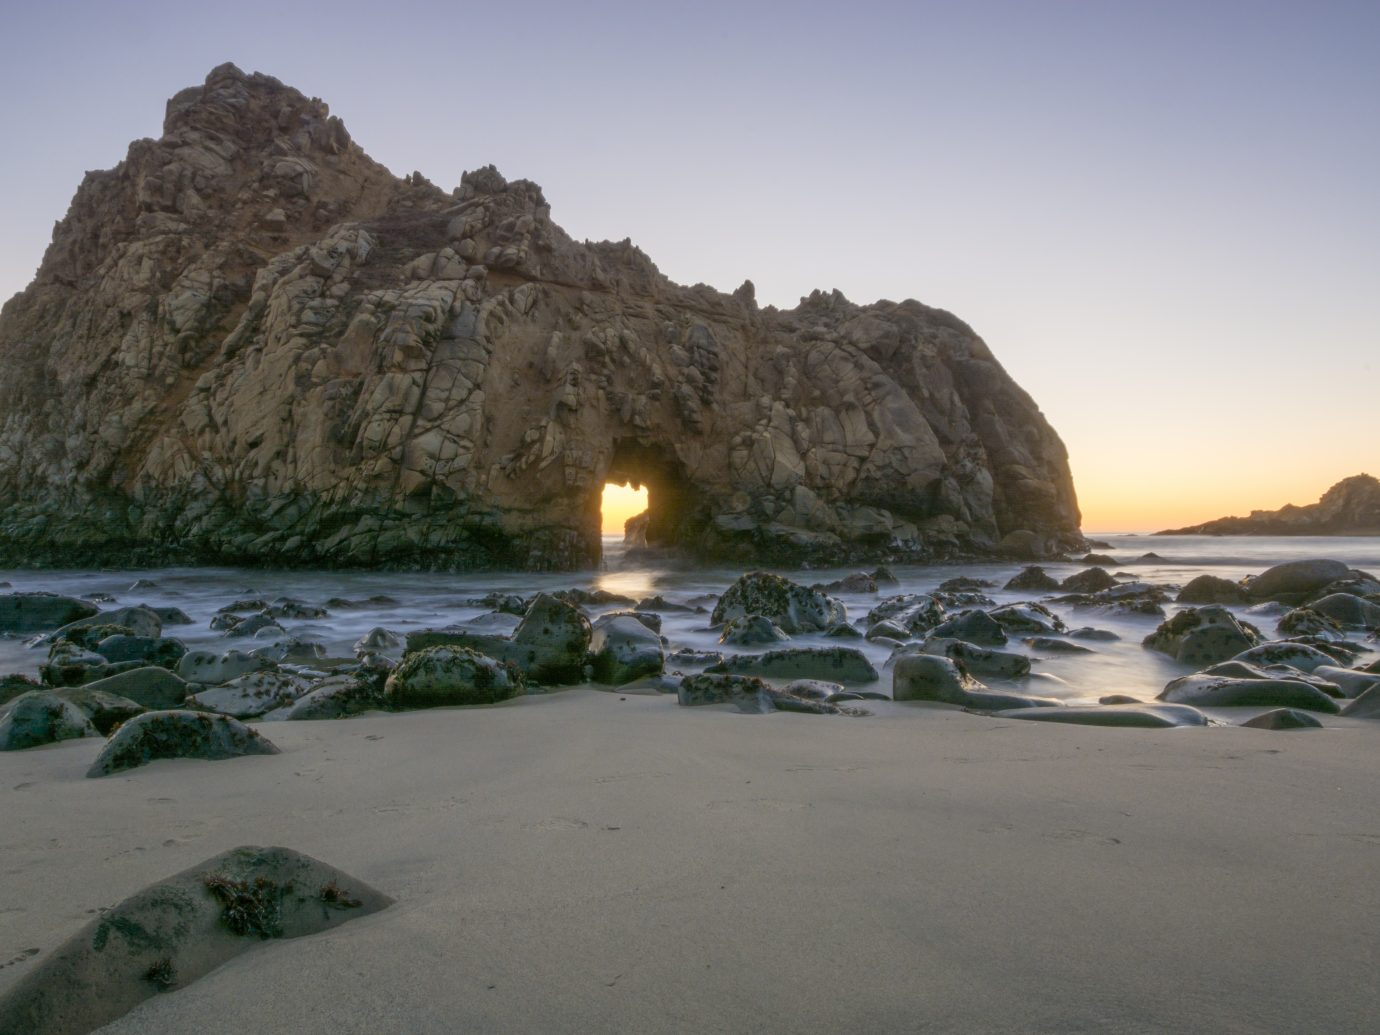 Setting sun glows through the keyhole at Pfeiffer Beach